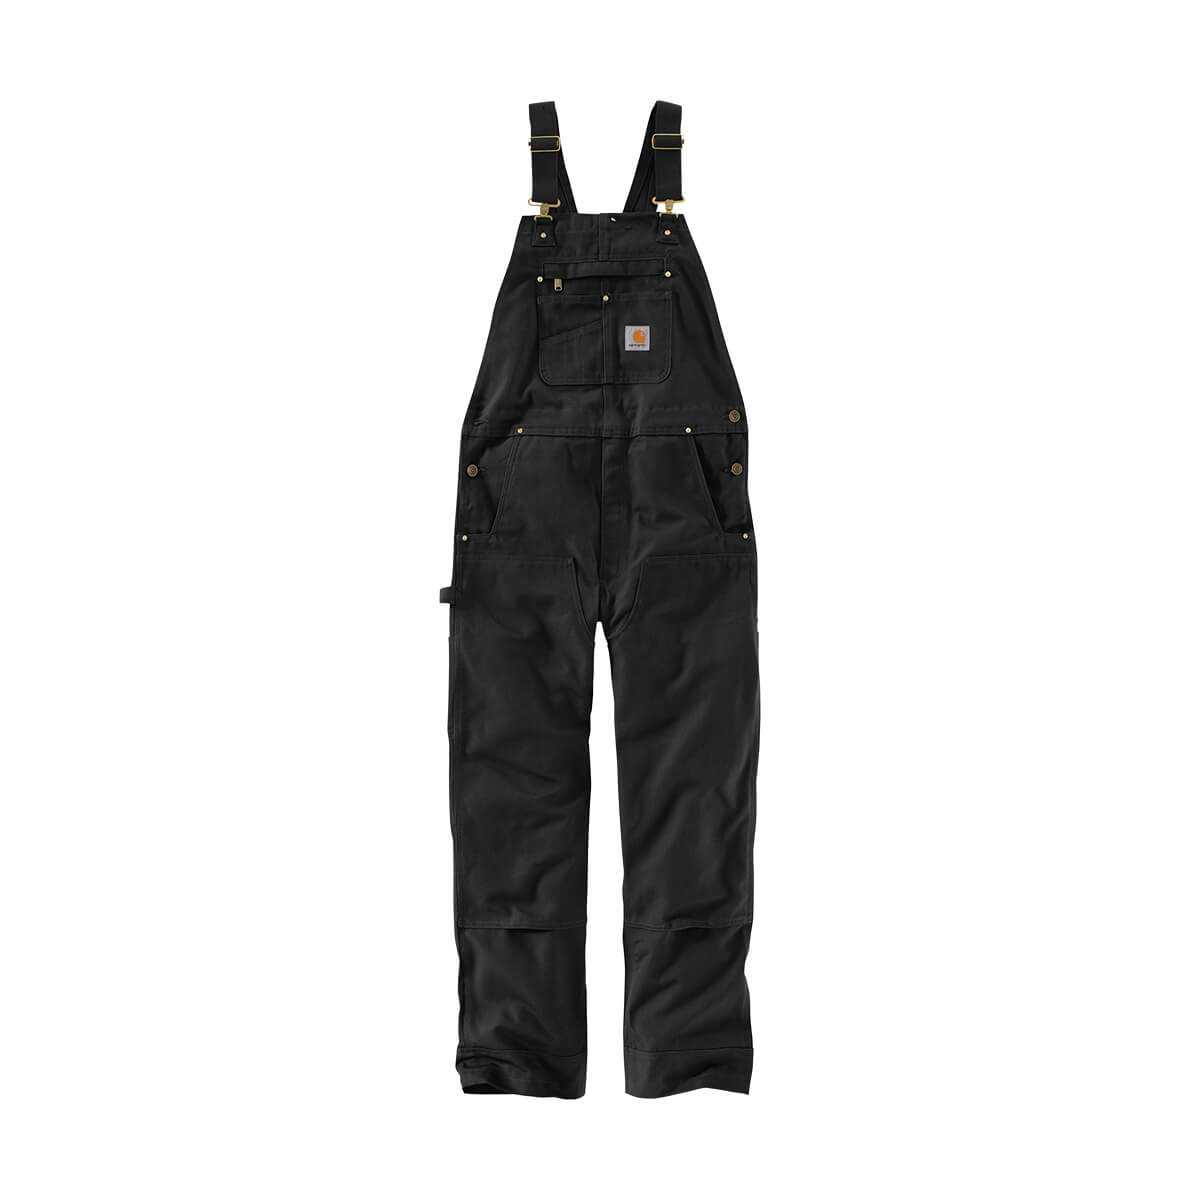 Men's Carhartt Unlined Duck Bib Overalls